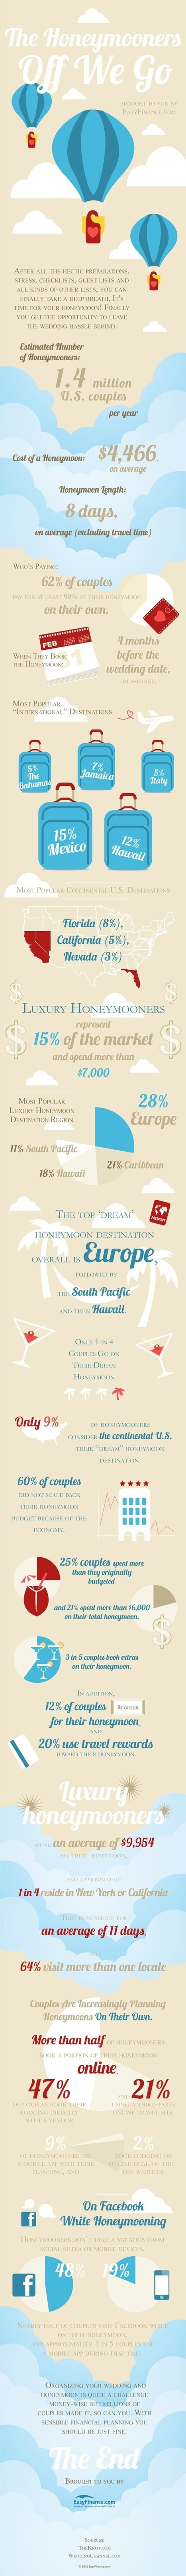 10 Best Beautiful Place for Honeymoon Romance | Infographics | Sex Crime Woman Money And Love | Scoop.it